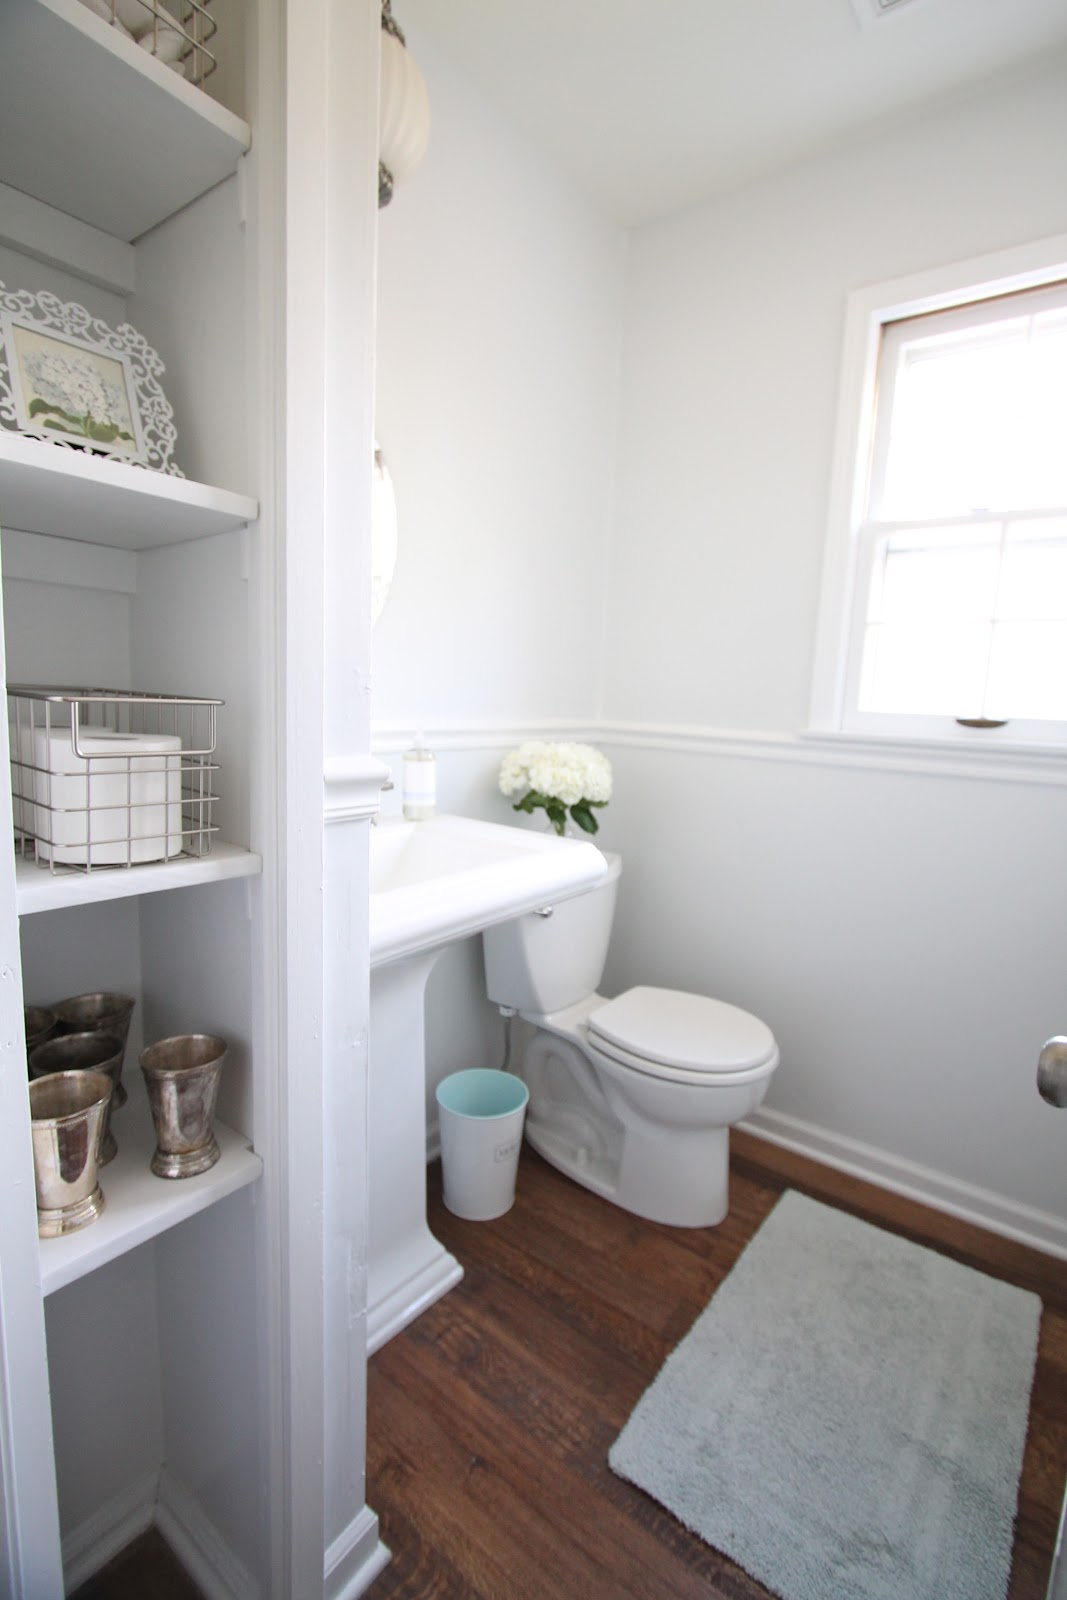 Diy Bathroom Remodel Photos diy bathroom remodel - julie blanner entertaining & home design